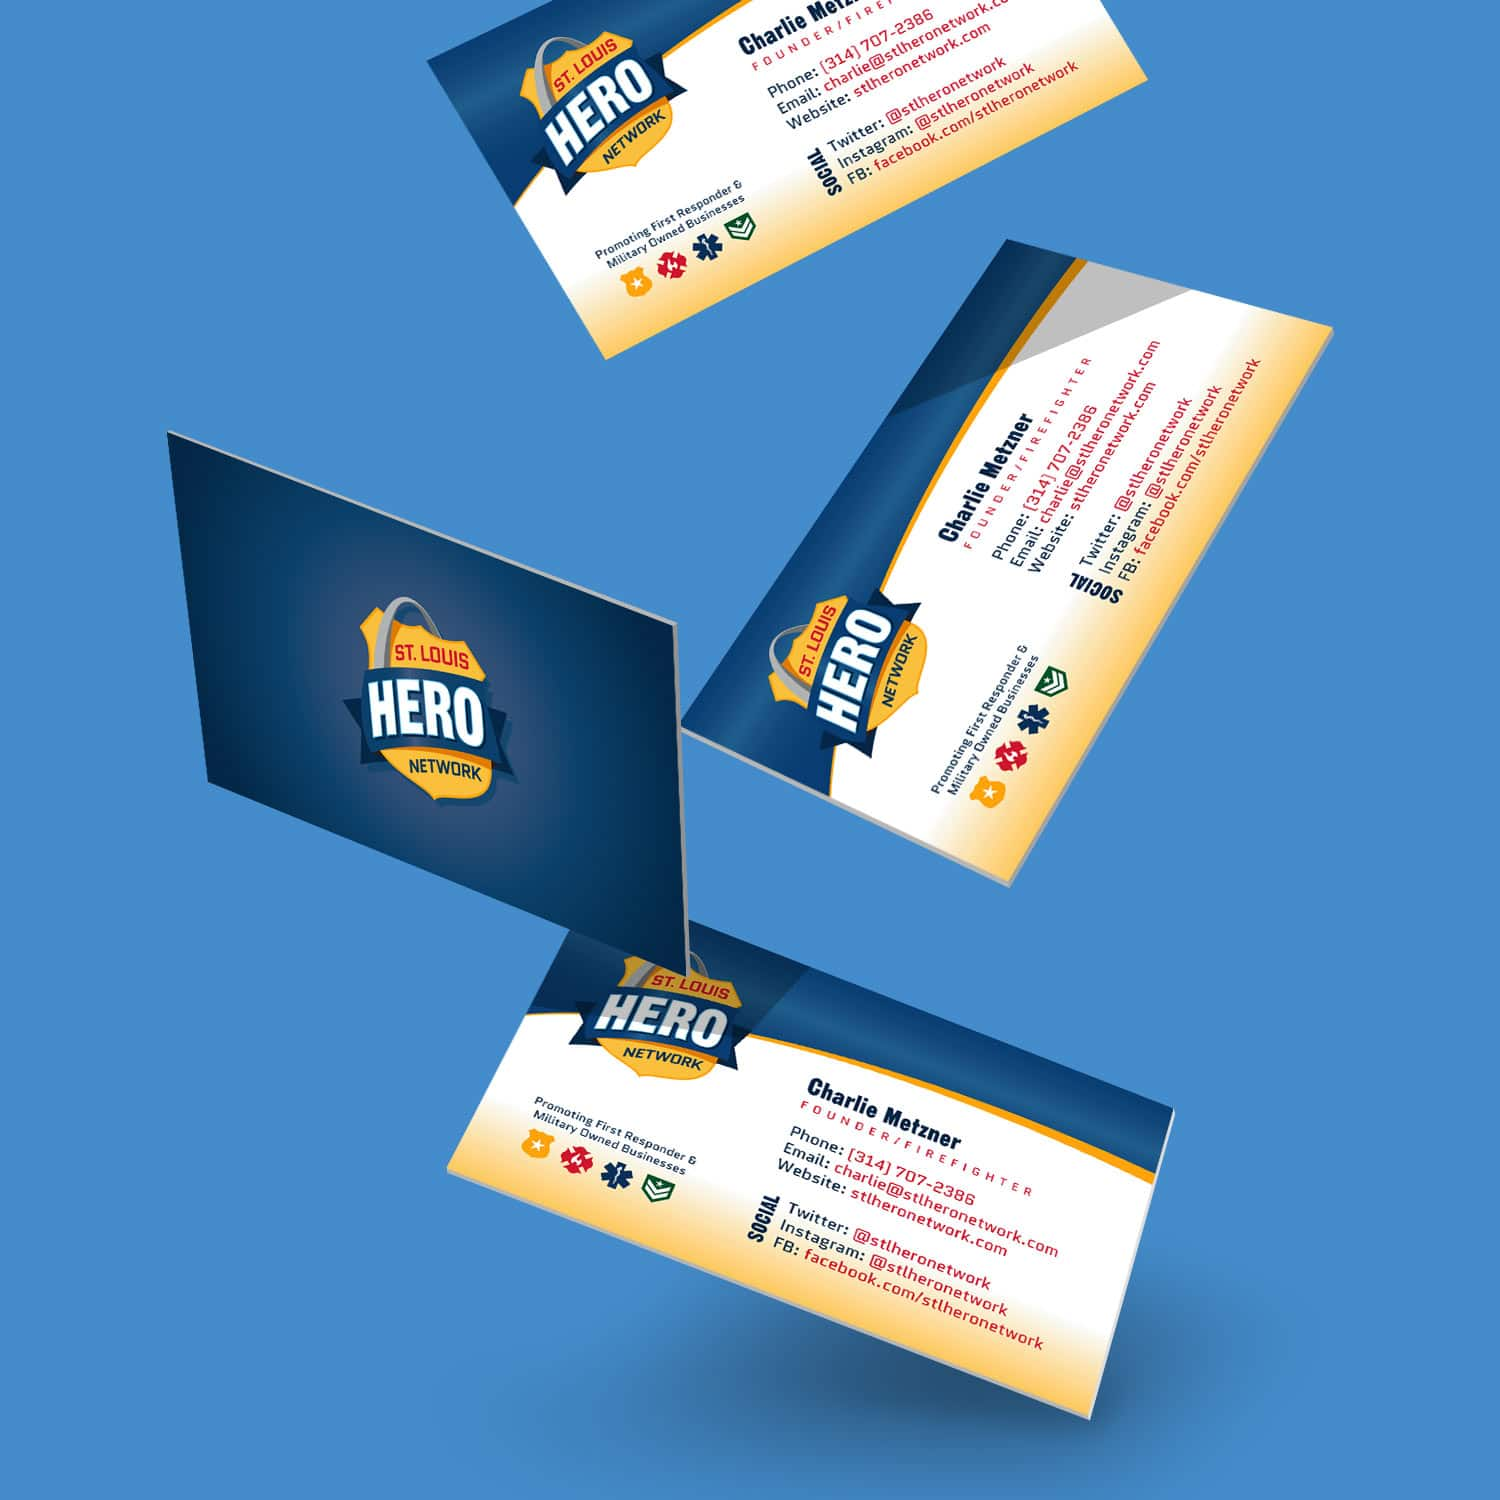 STL Hero Network Business Card 2